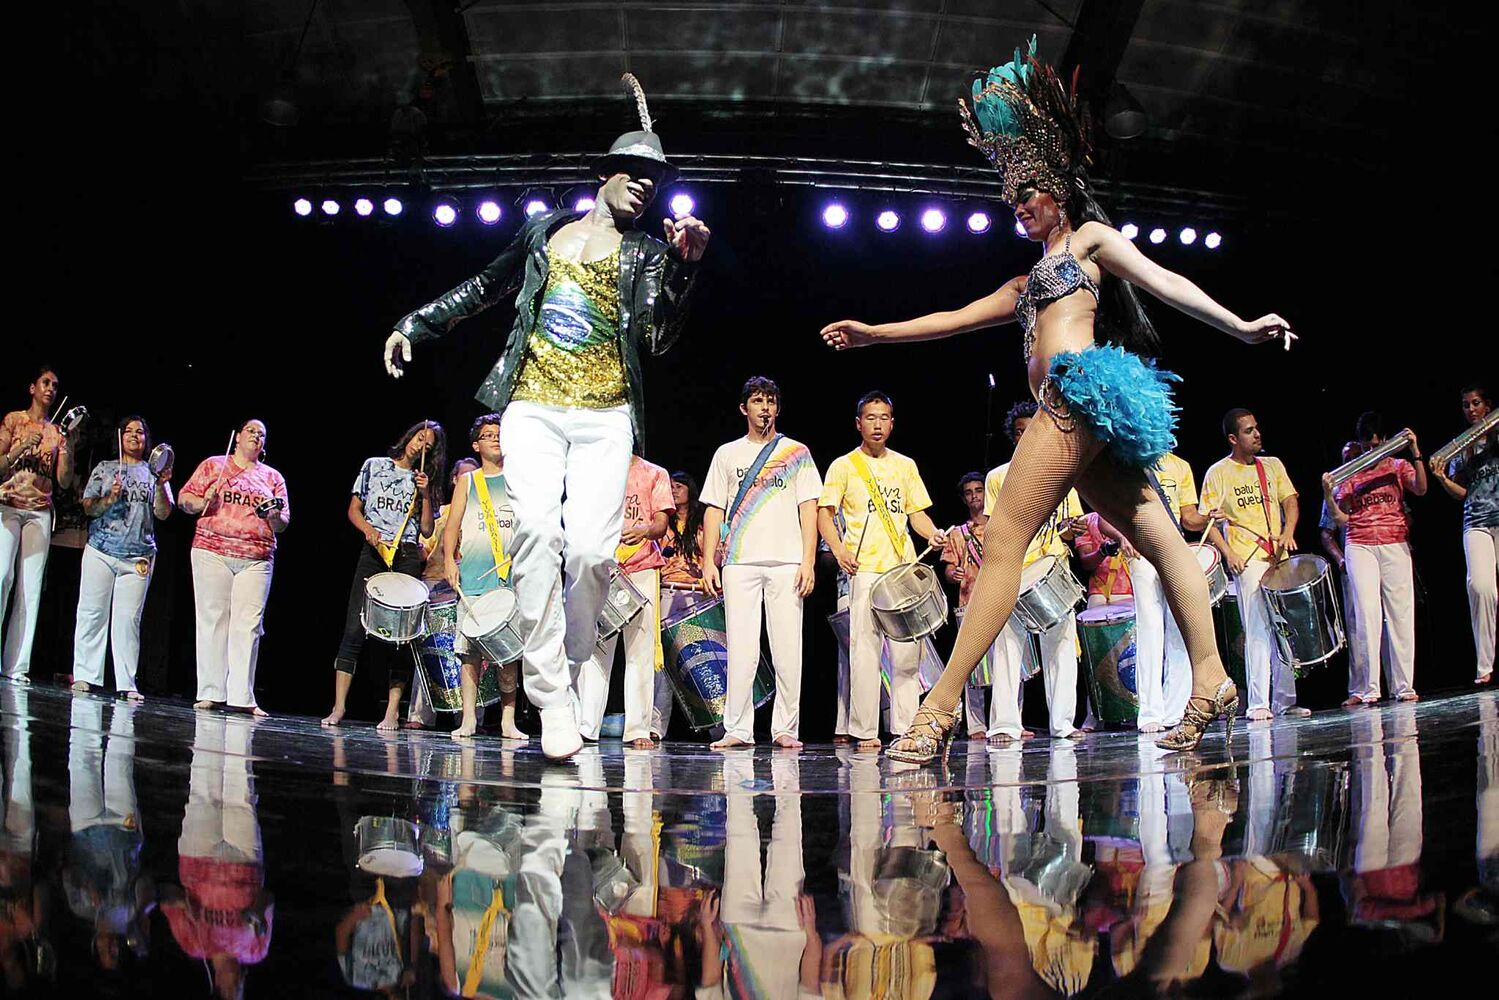 Dancers take the stage at the Brazilian pavilion. (John Woods / Winnipeg Free Press)